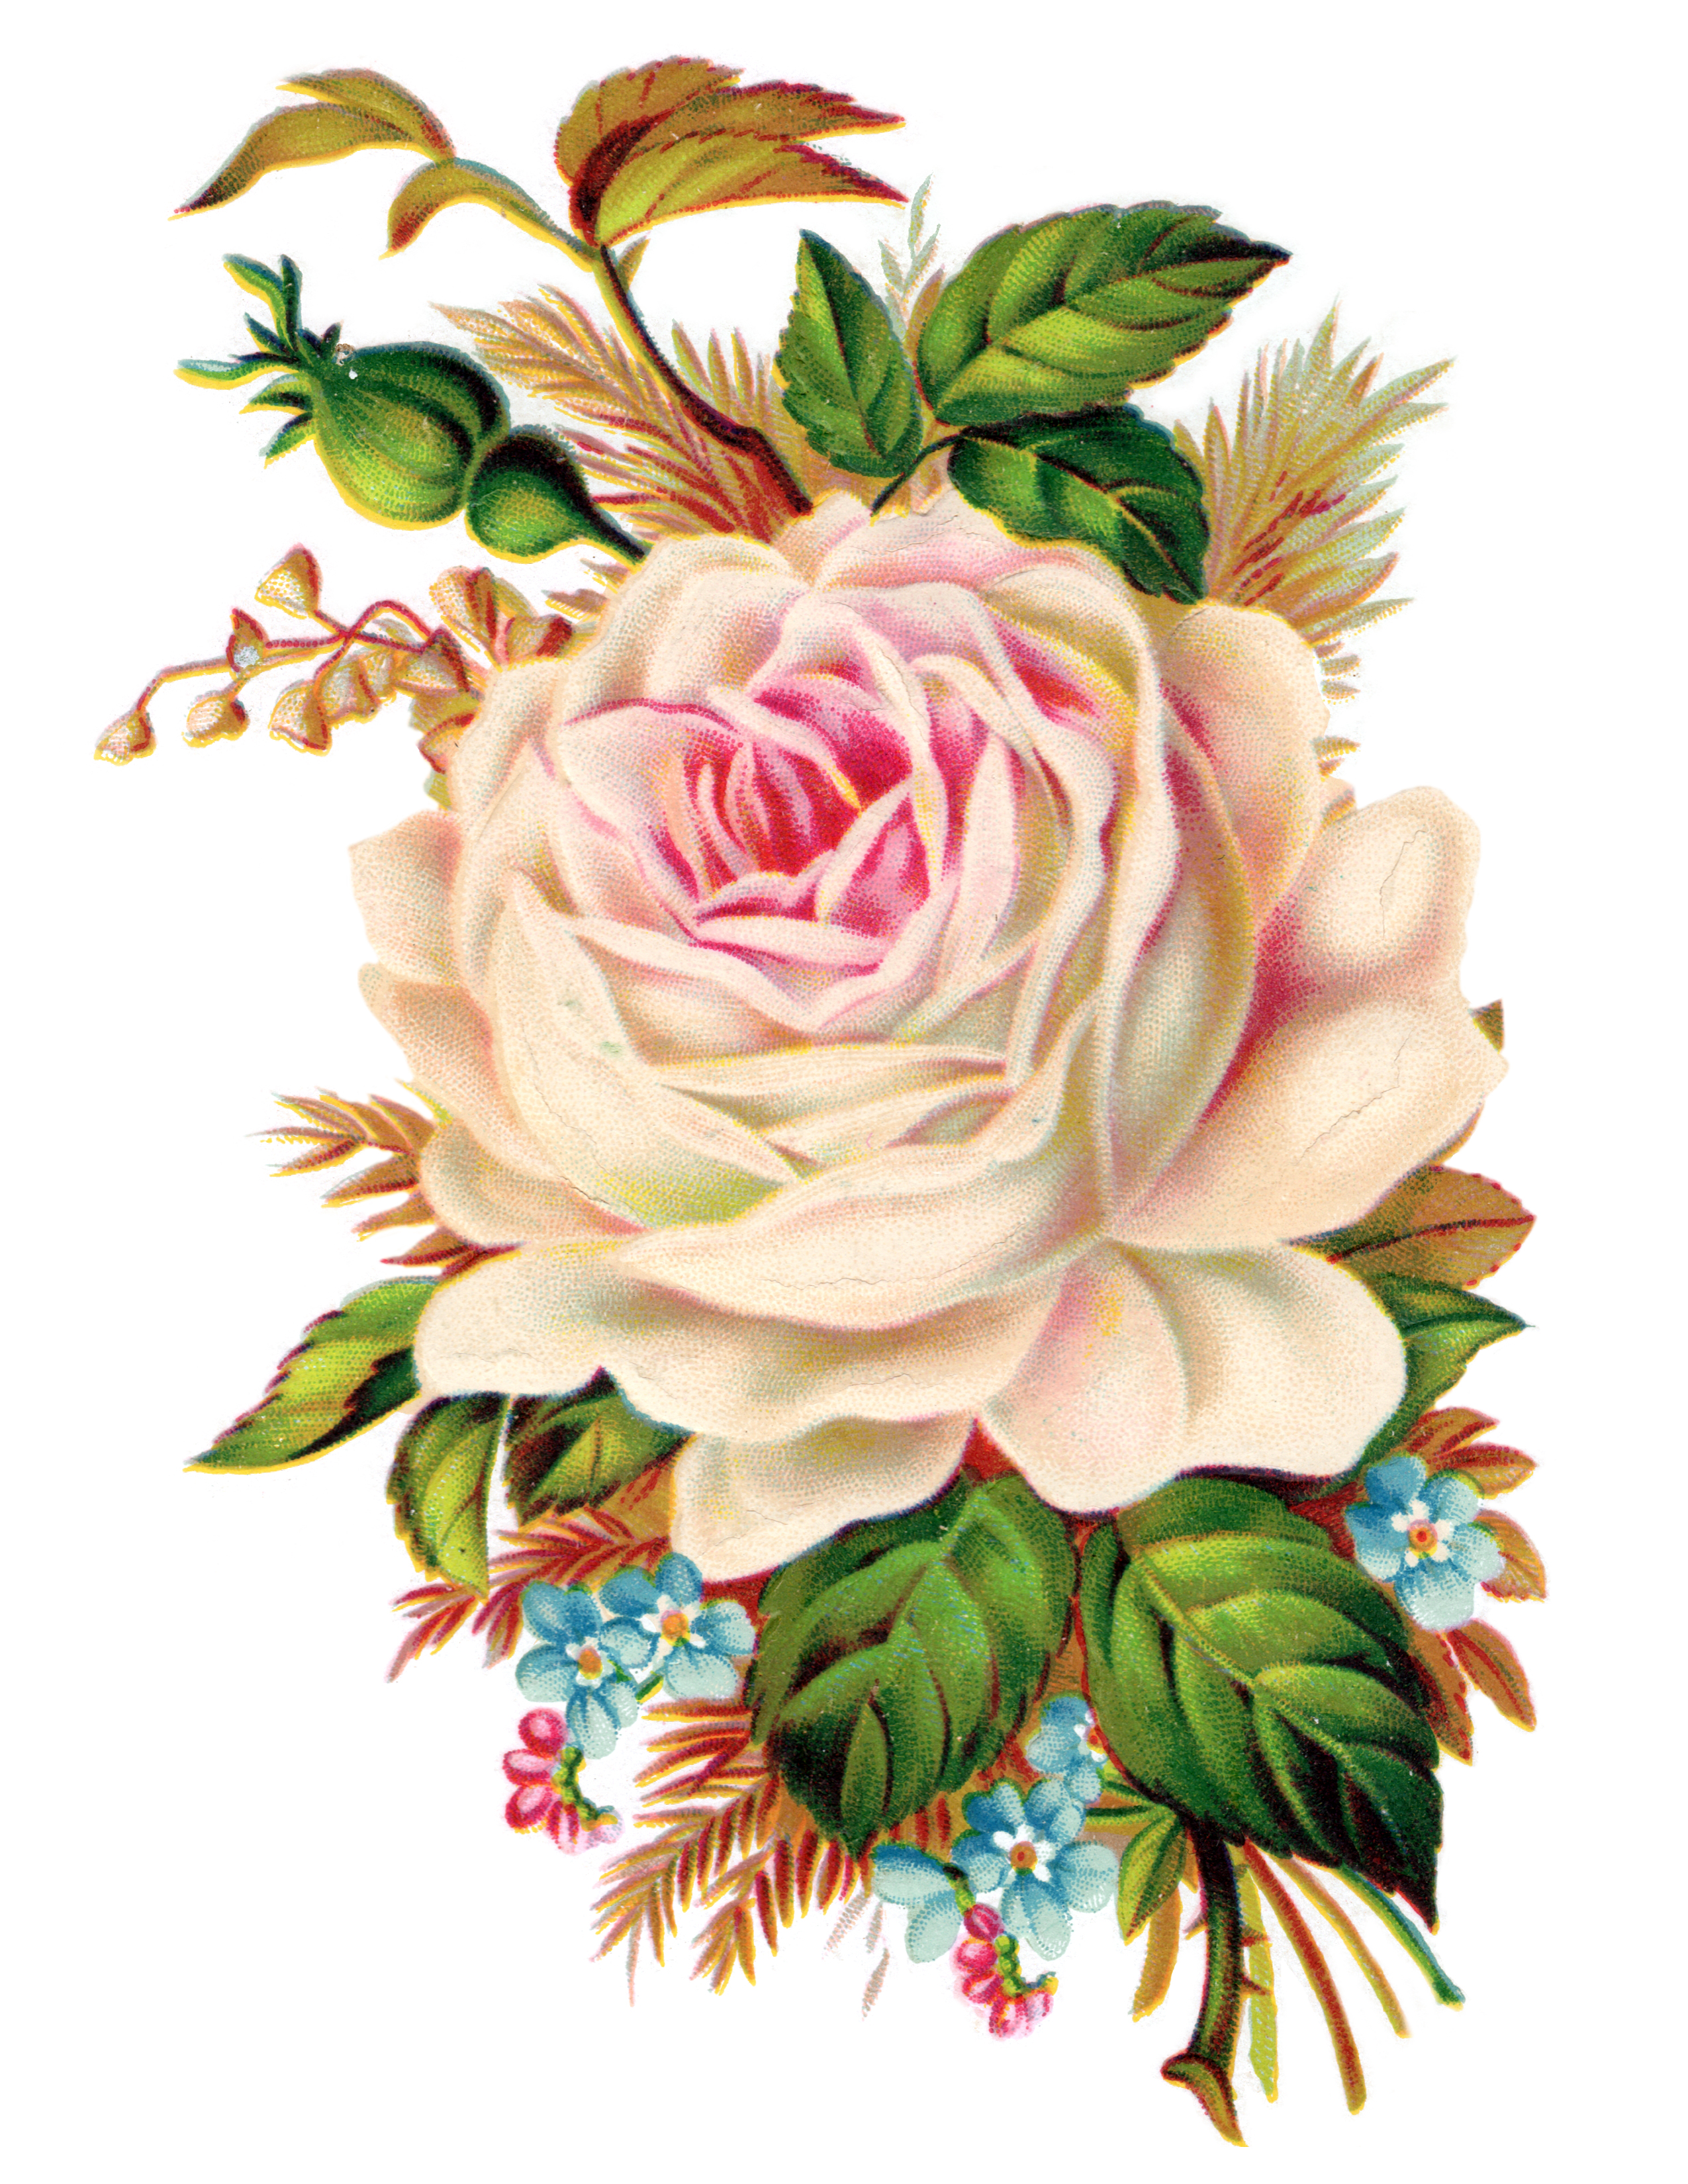 Clip Art  Royalty Free Gorgeous Vintage Rose Image   Free Pretty